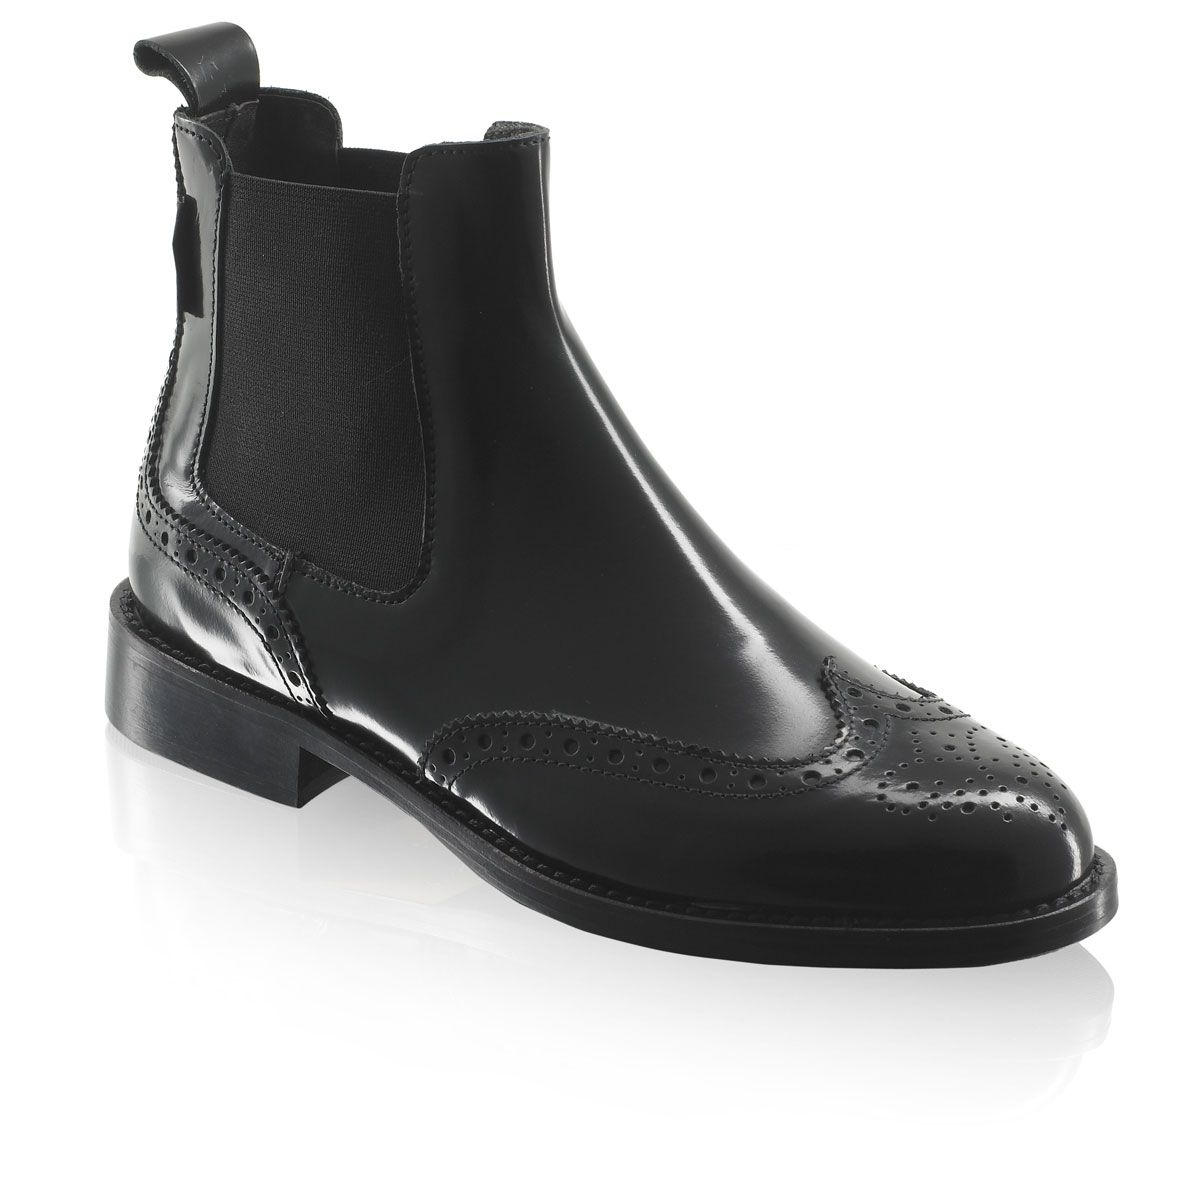 russell bromley boots